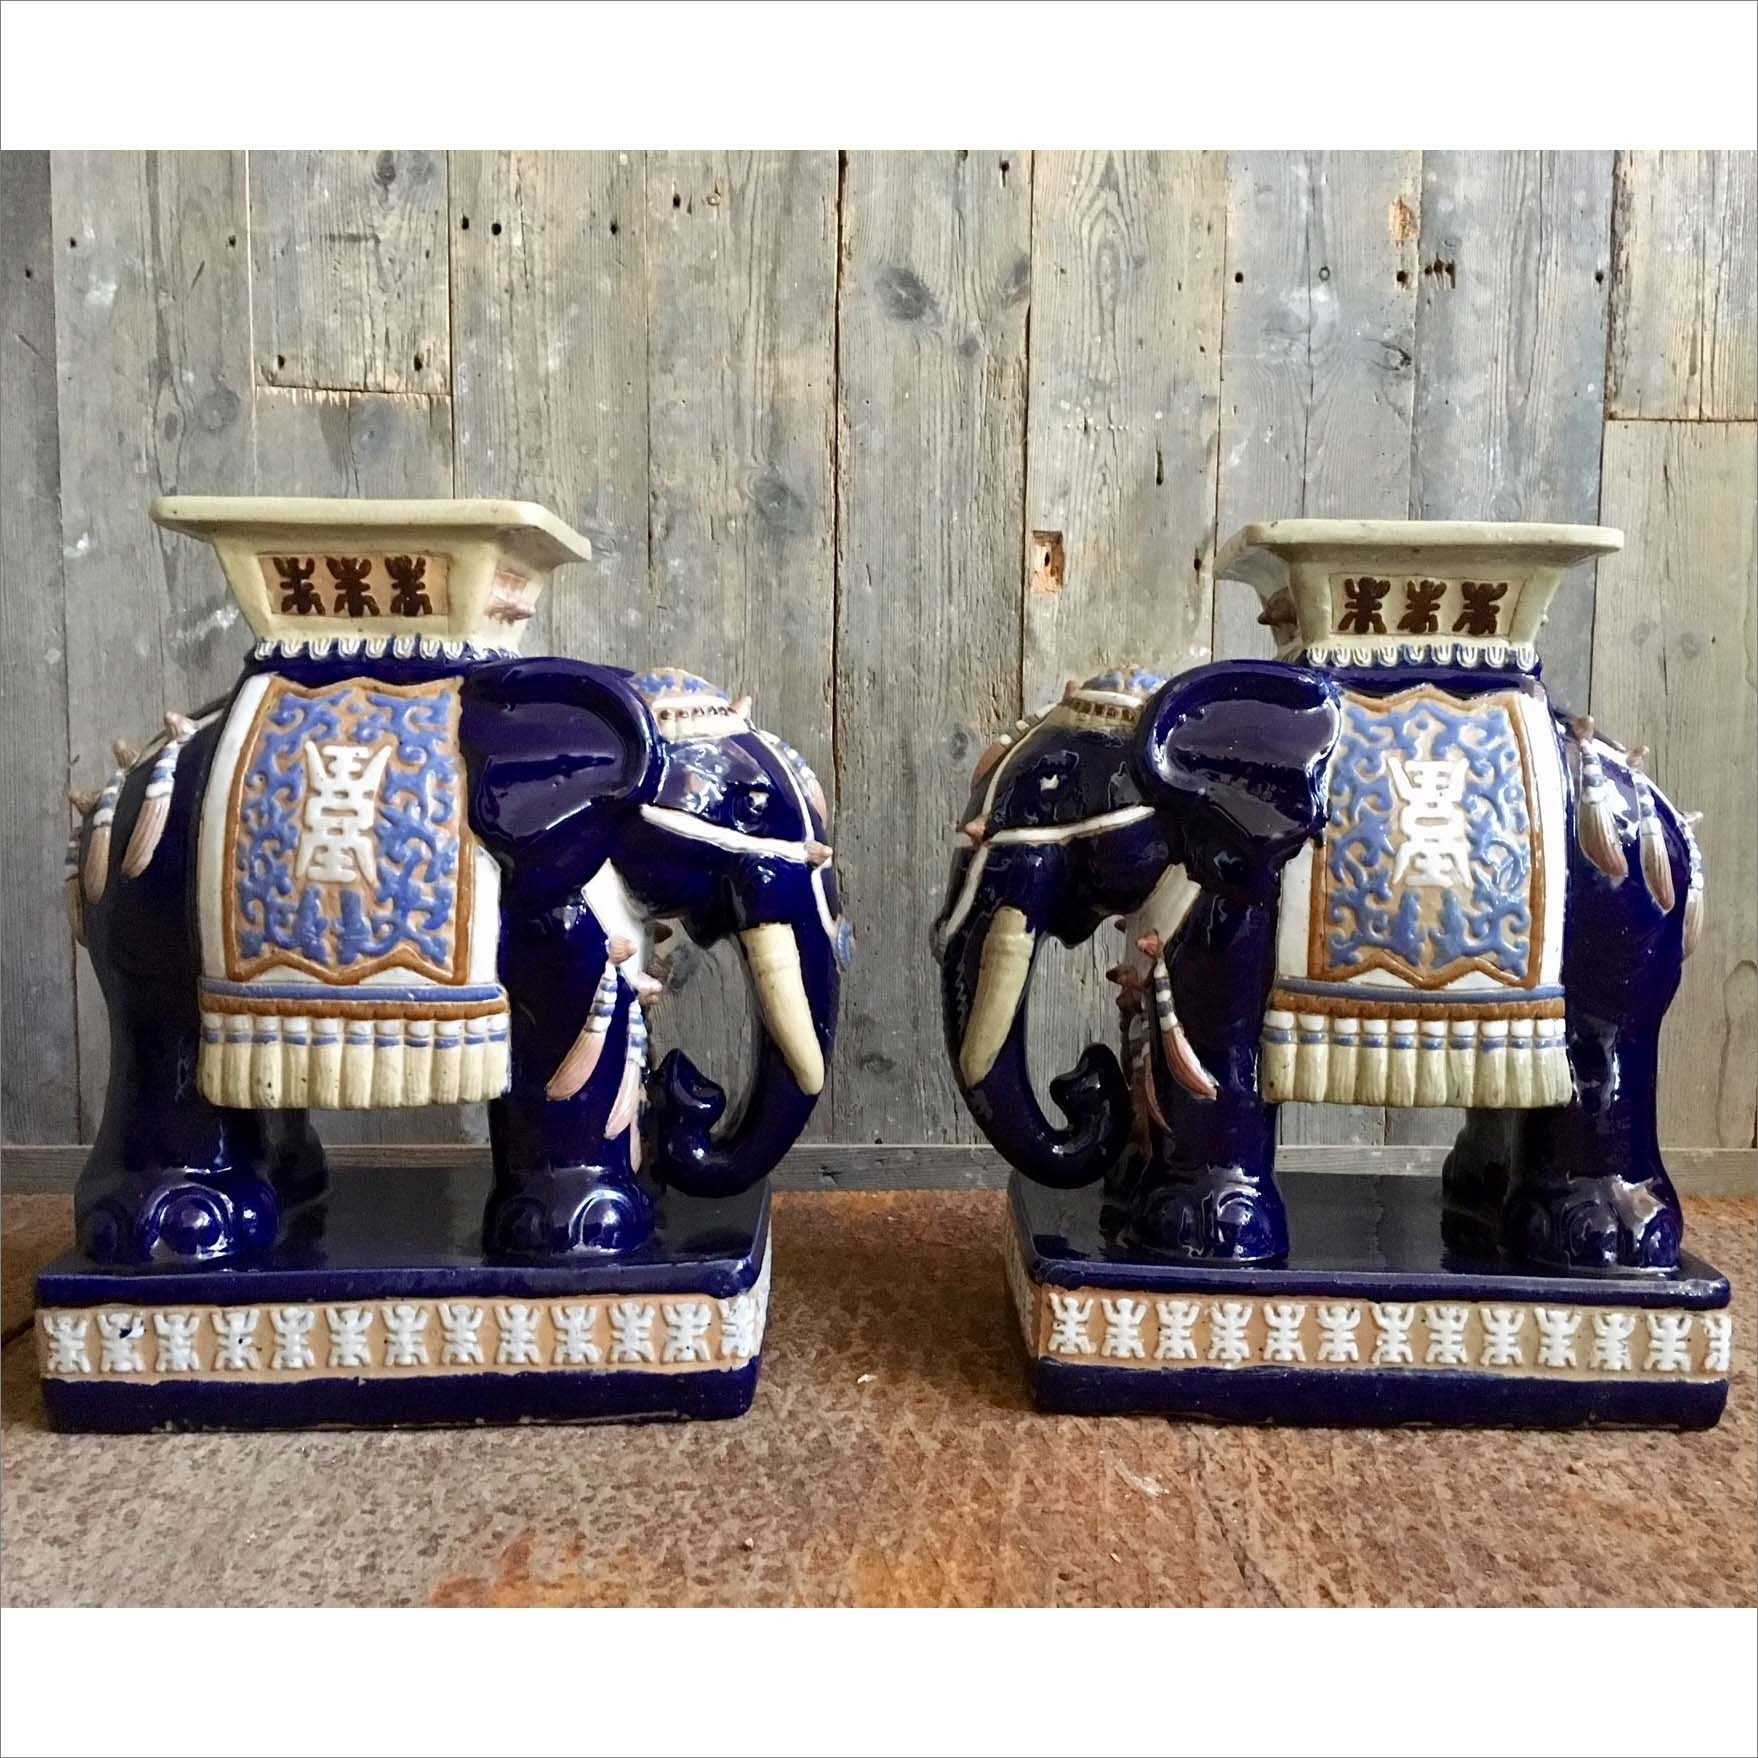 Pair of ceramic Oriental Elephant stools or drinking tables